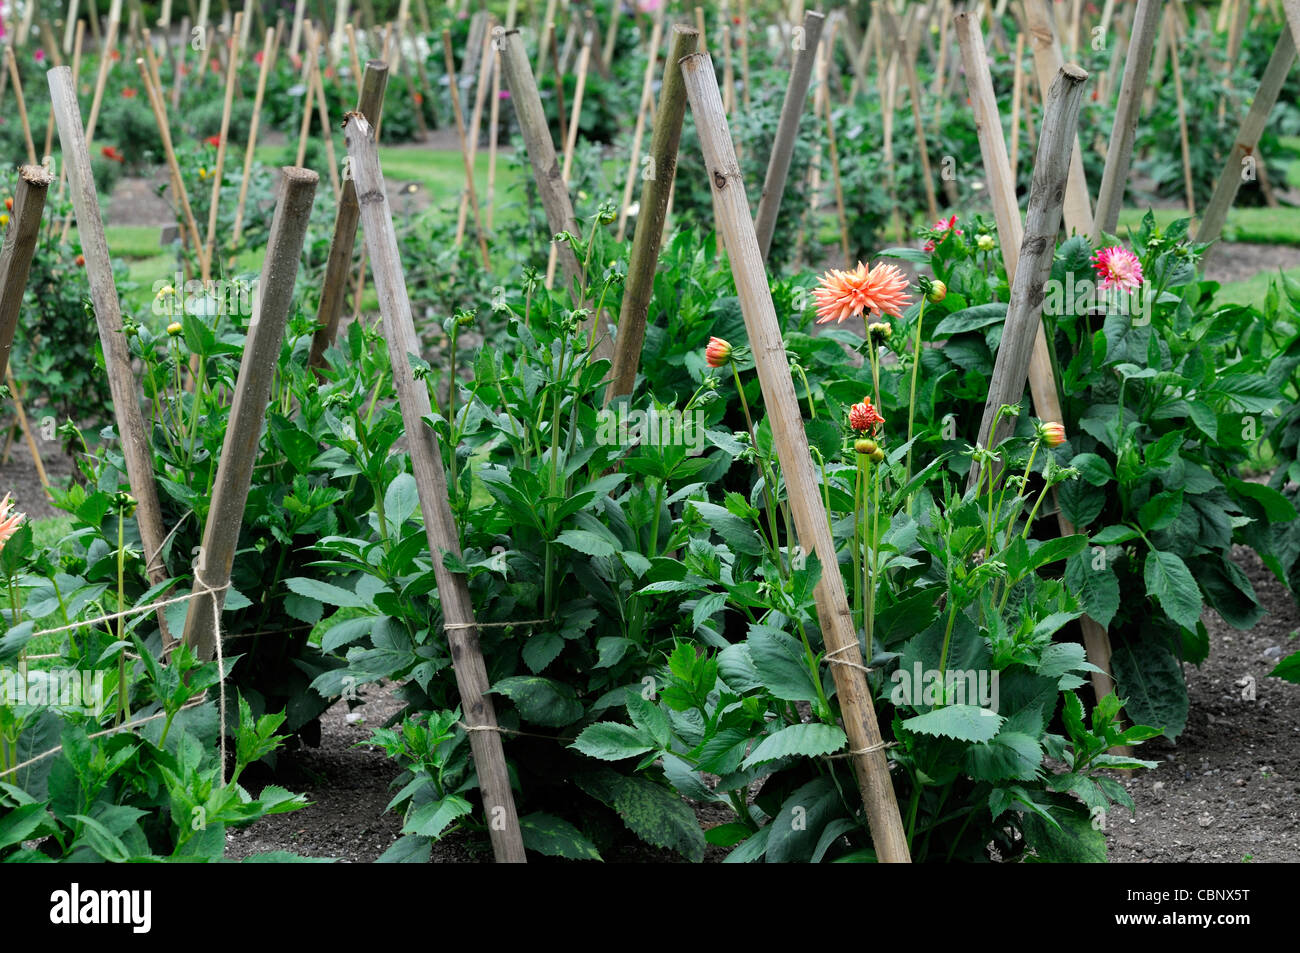 Dahlia dahlias perennials wood wooden stake stakes staked for Perennial wood